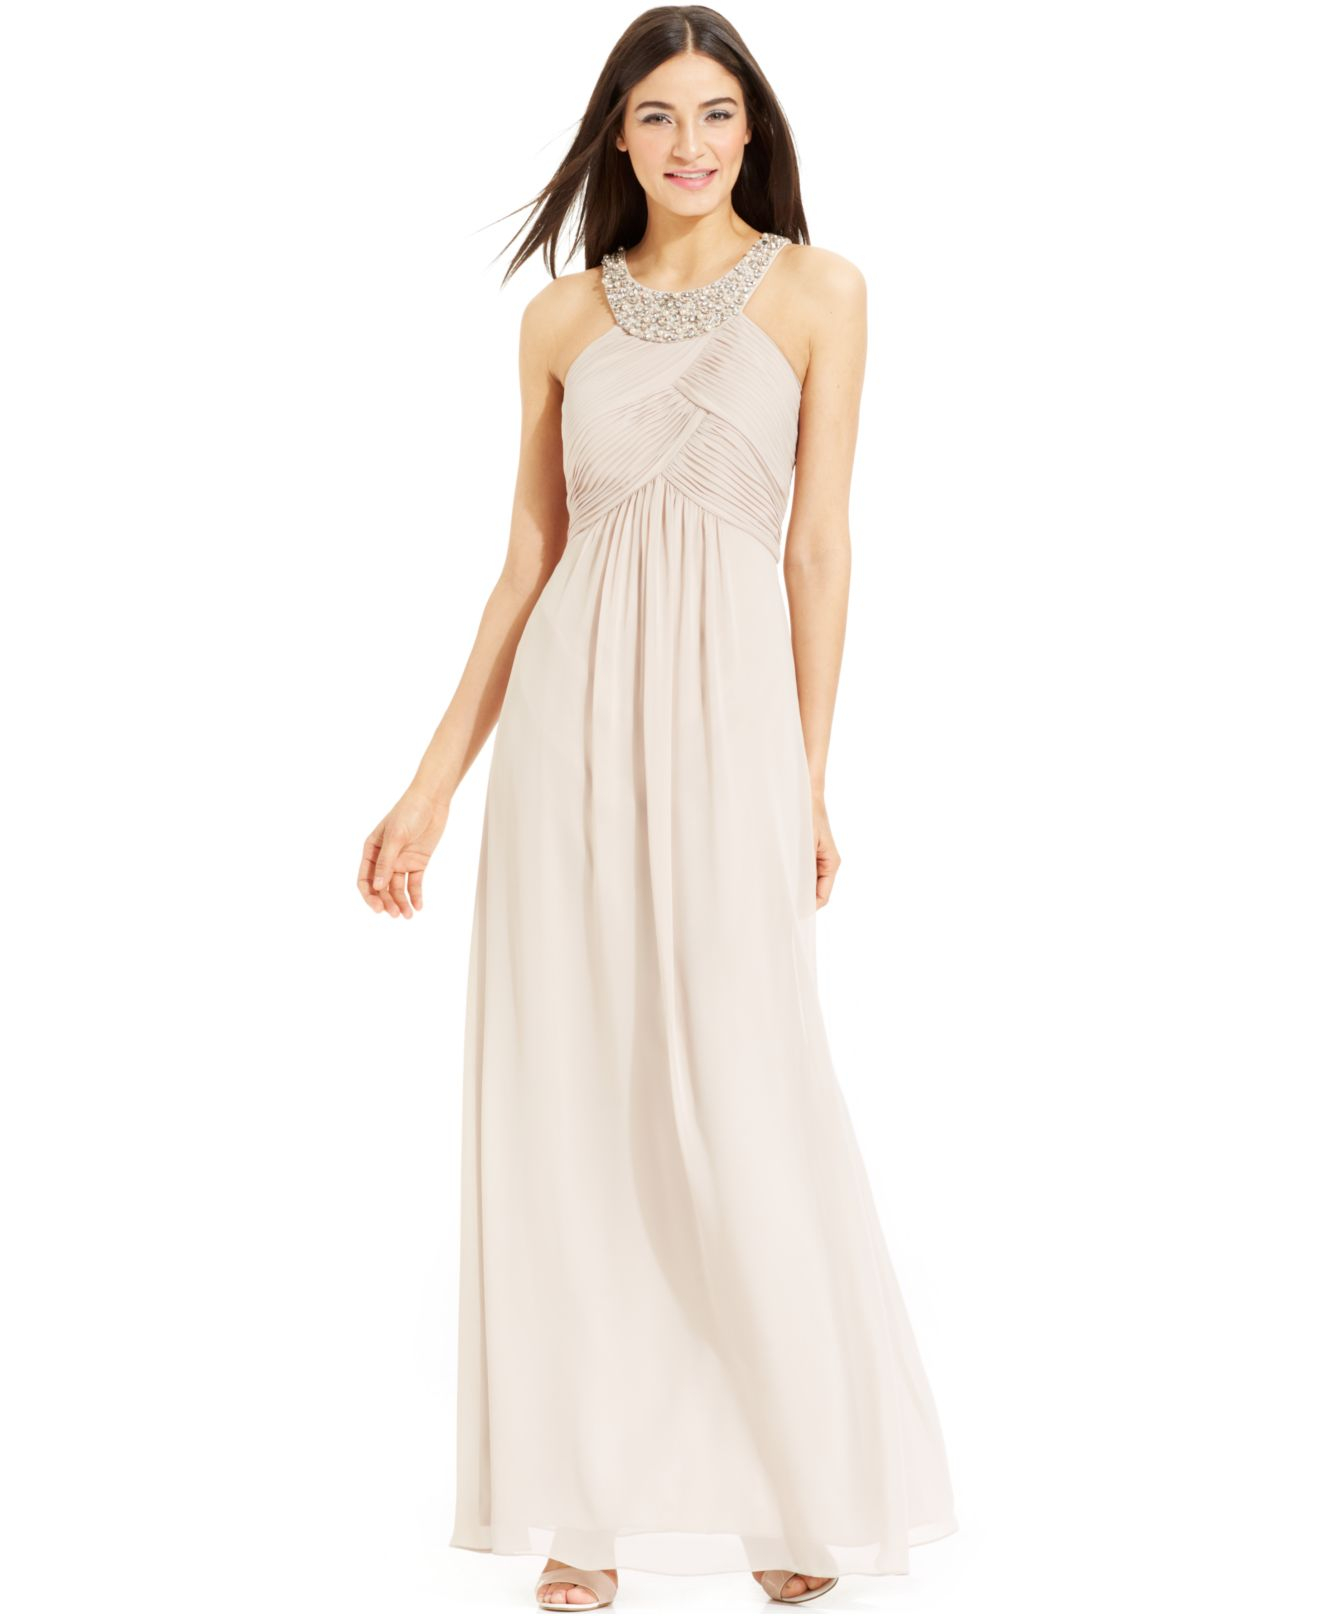 Lyst - Vince Camuto Bead-Trim Pleated Halter Gown in Metallic